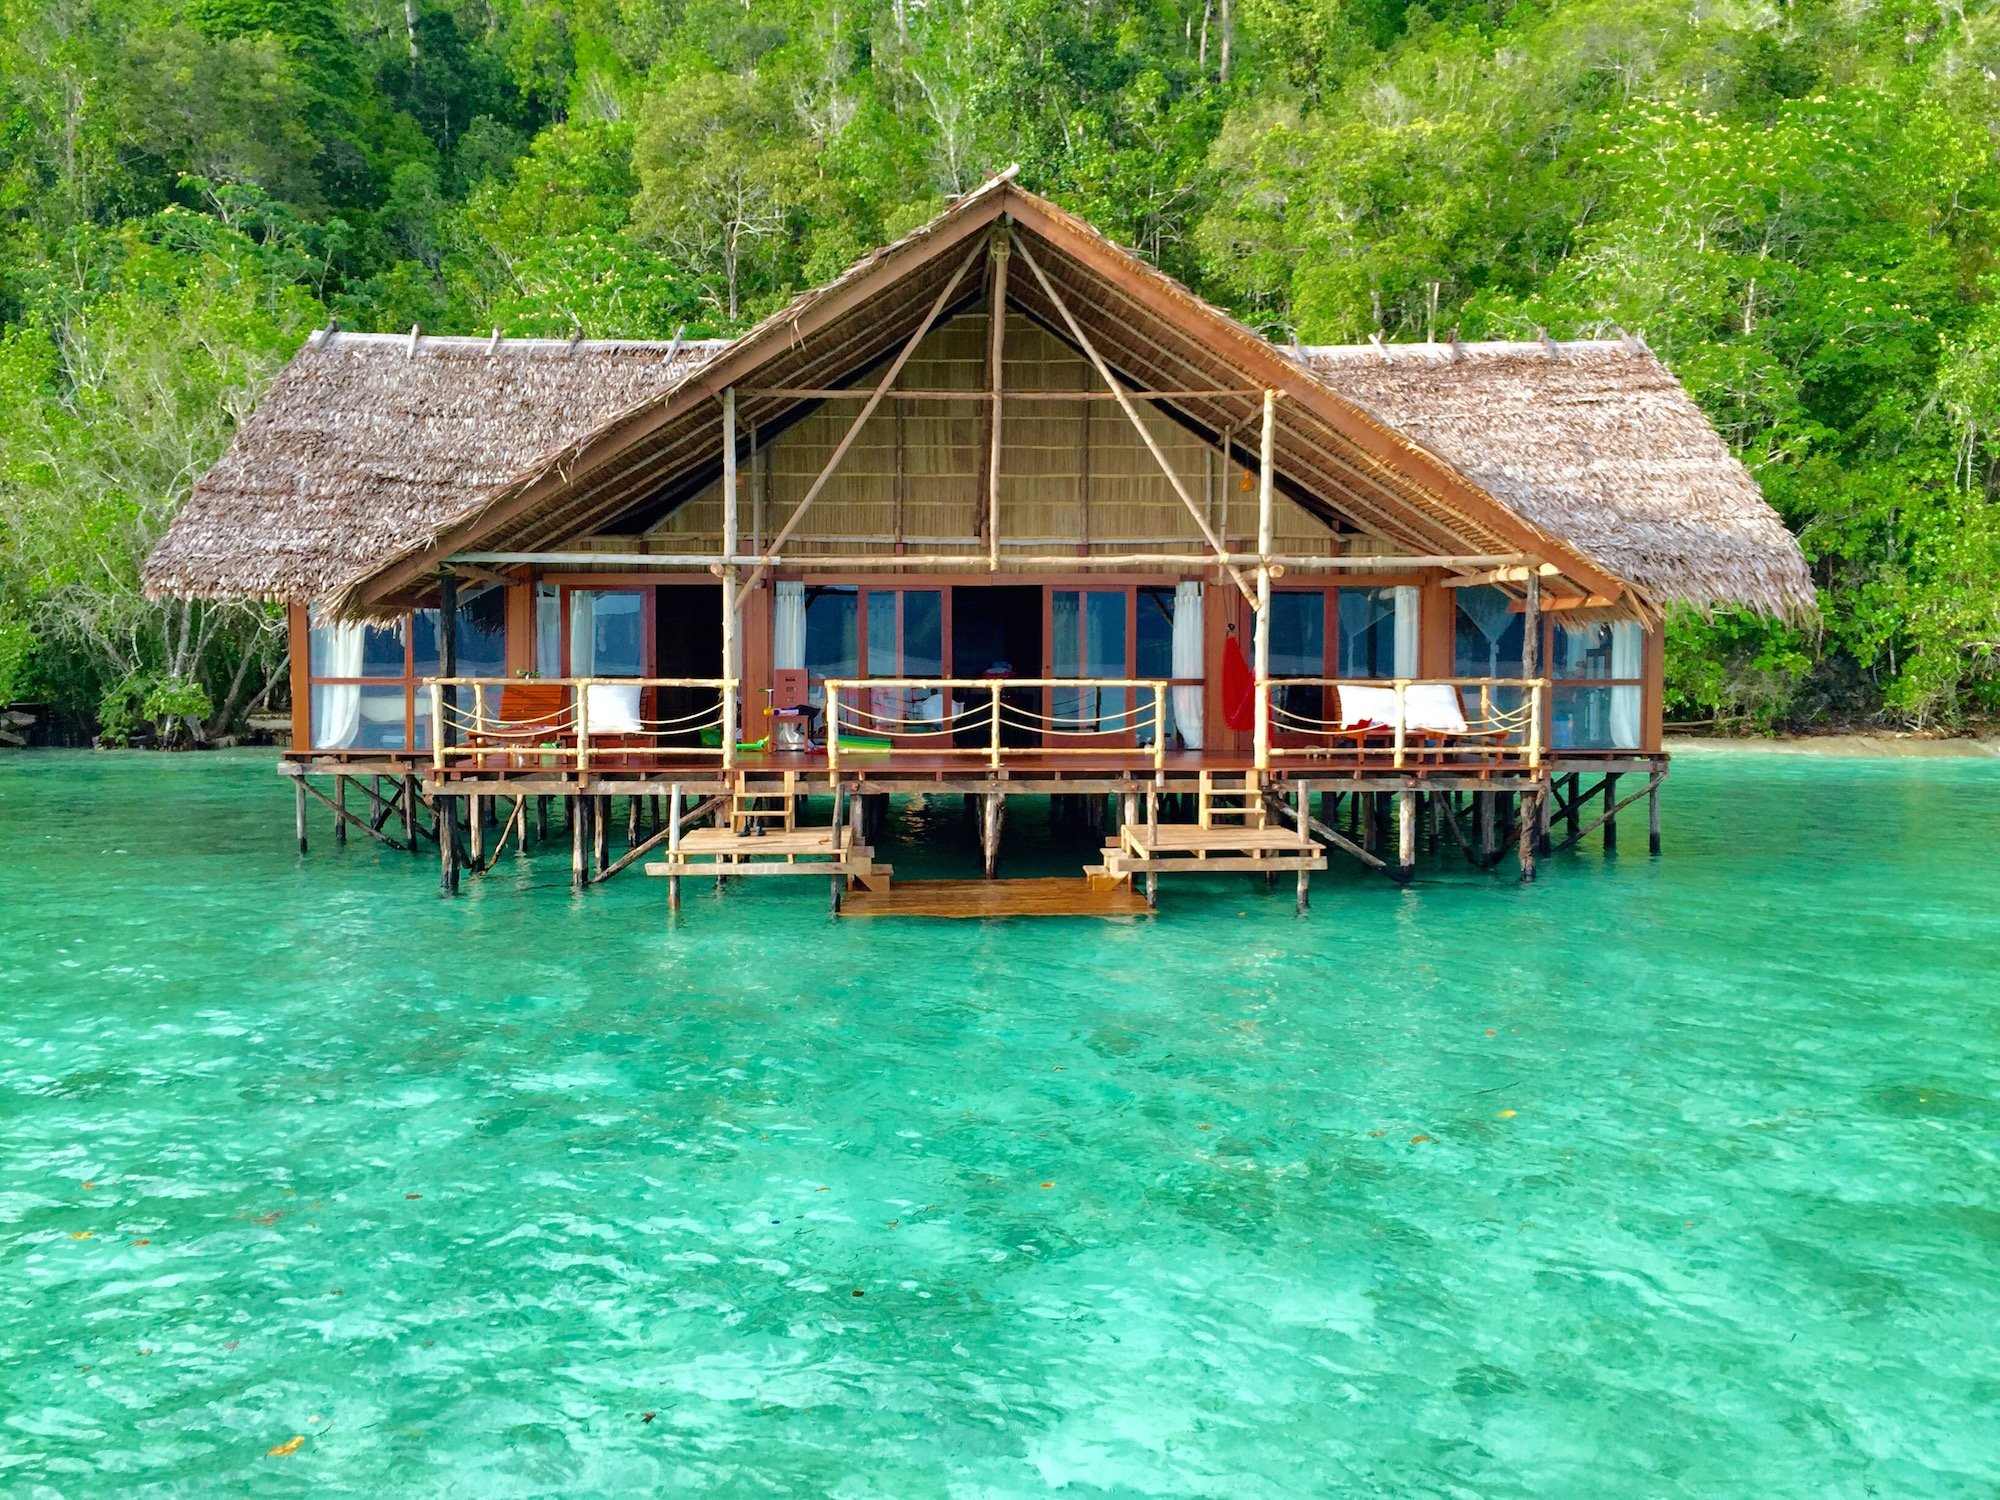 water bungalows at the heart of raja ampat papua explorers resort. Black Bedroom Furniture Sets. Home Design Ideas